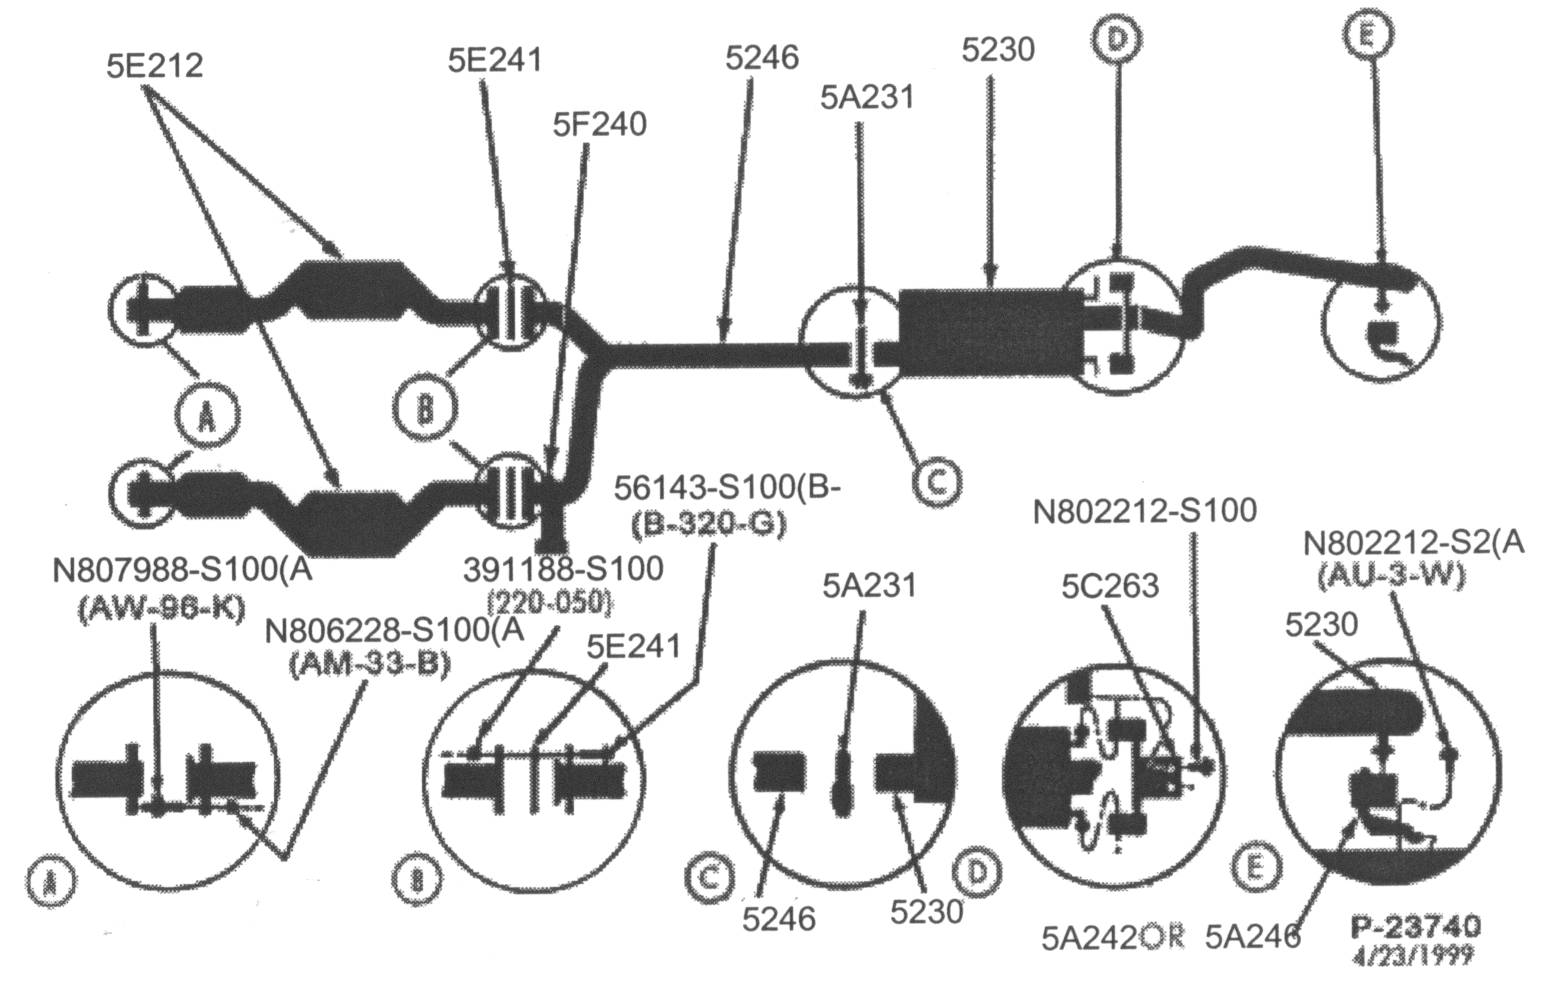 Index moreover 3vdop Spark Plug Firing Order 1997 Ford Taurus besides 2010 Ford F150 Door Wiring Harness further 2006 Kenworth T600 Ac Wiring Diagram in addition Wiring Diagram For 2005 Ford Freestyle. on 2002 ford f 150 wiring diagram